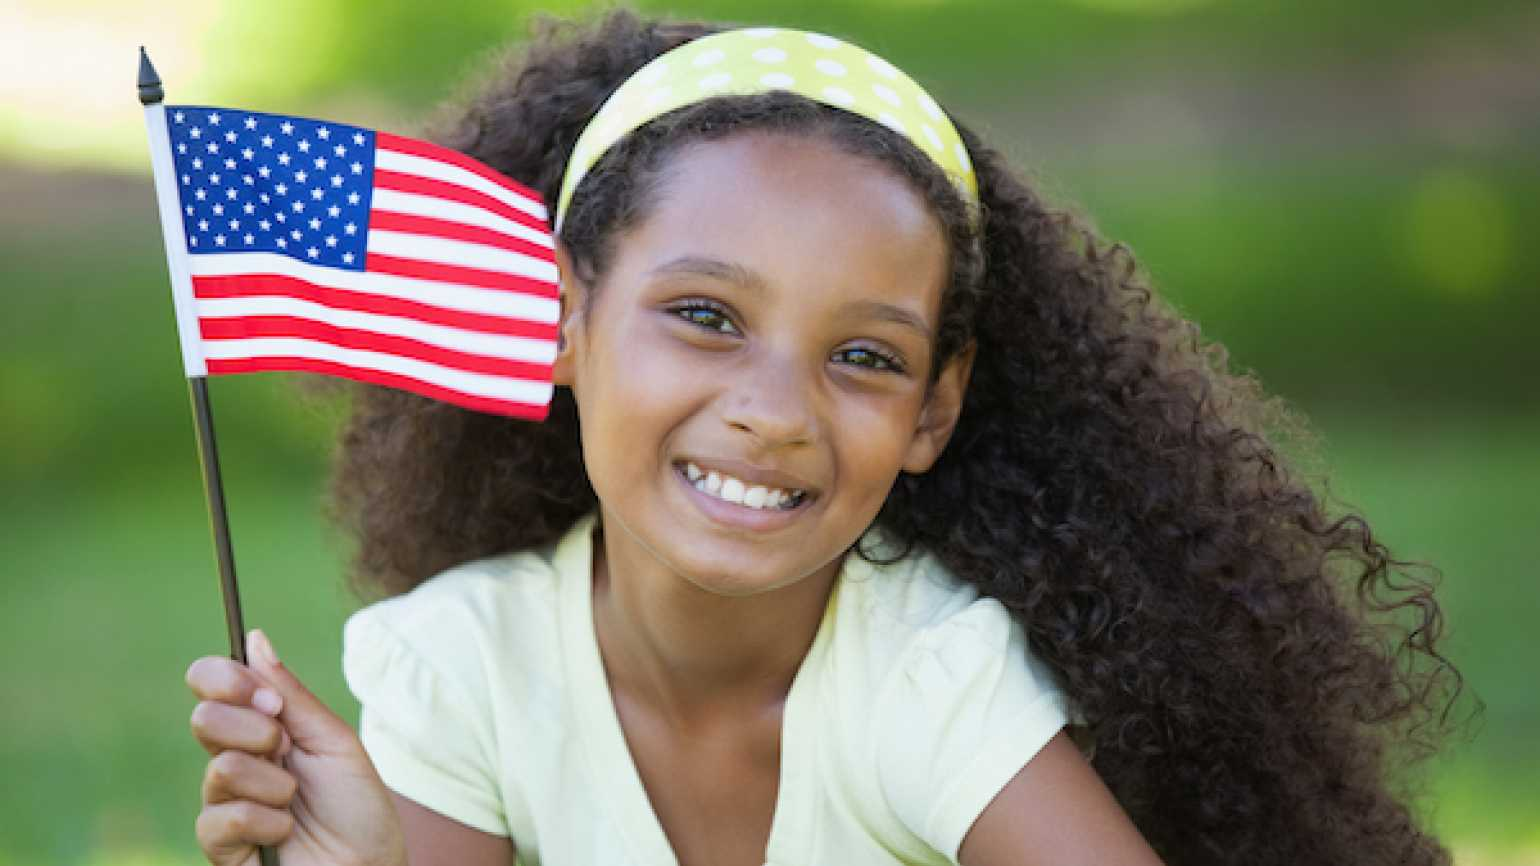 Celebrate the symbolic power of the flag on Flag Day, June 14.